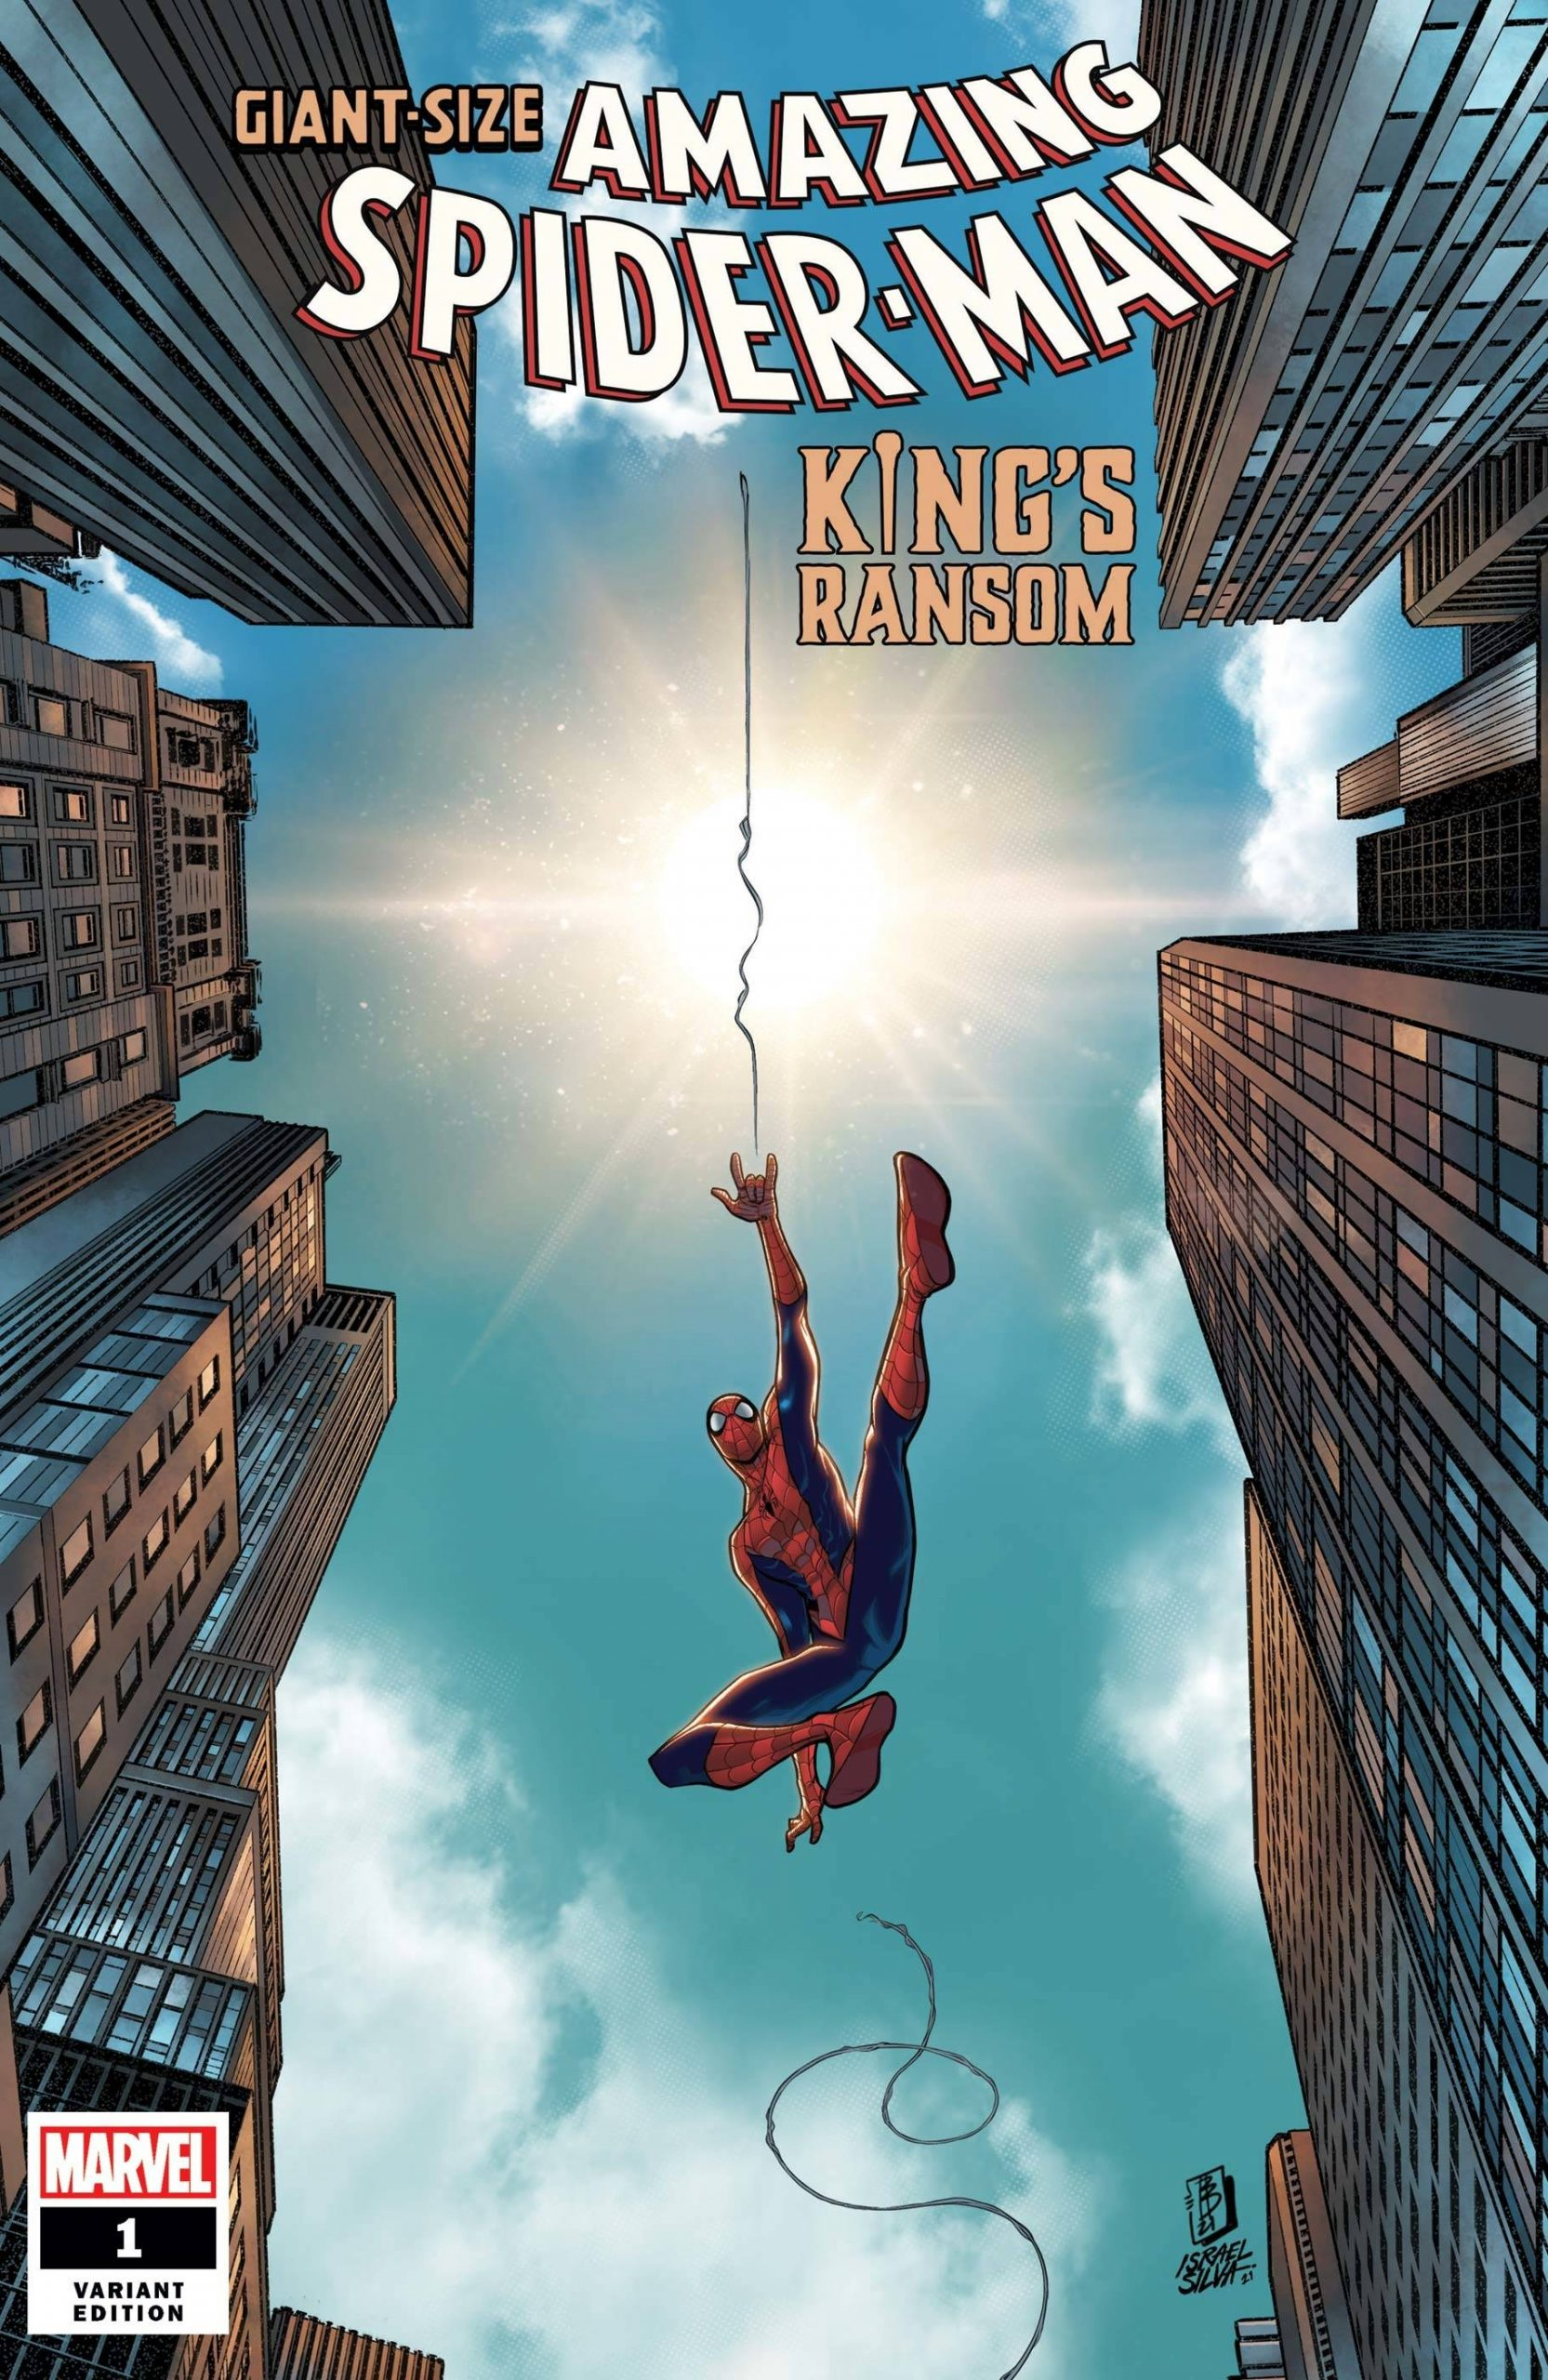 GIANT-SIZE-AMAZING-SPIDER-MAN-KINGS-RANSOM-1-spoilers-0-2-scaled-1 GIANT-SIZE-AMAZING-SPIDER-MAN-KINGS-RANSOM-1-spoilers-0-2-scaled-1